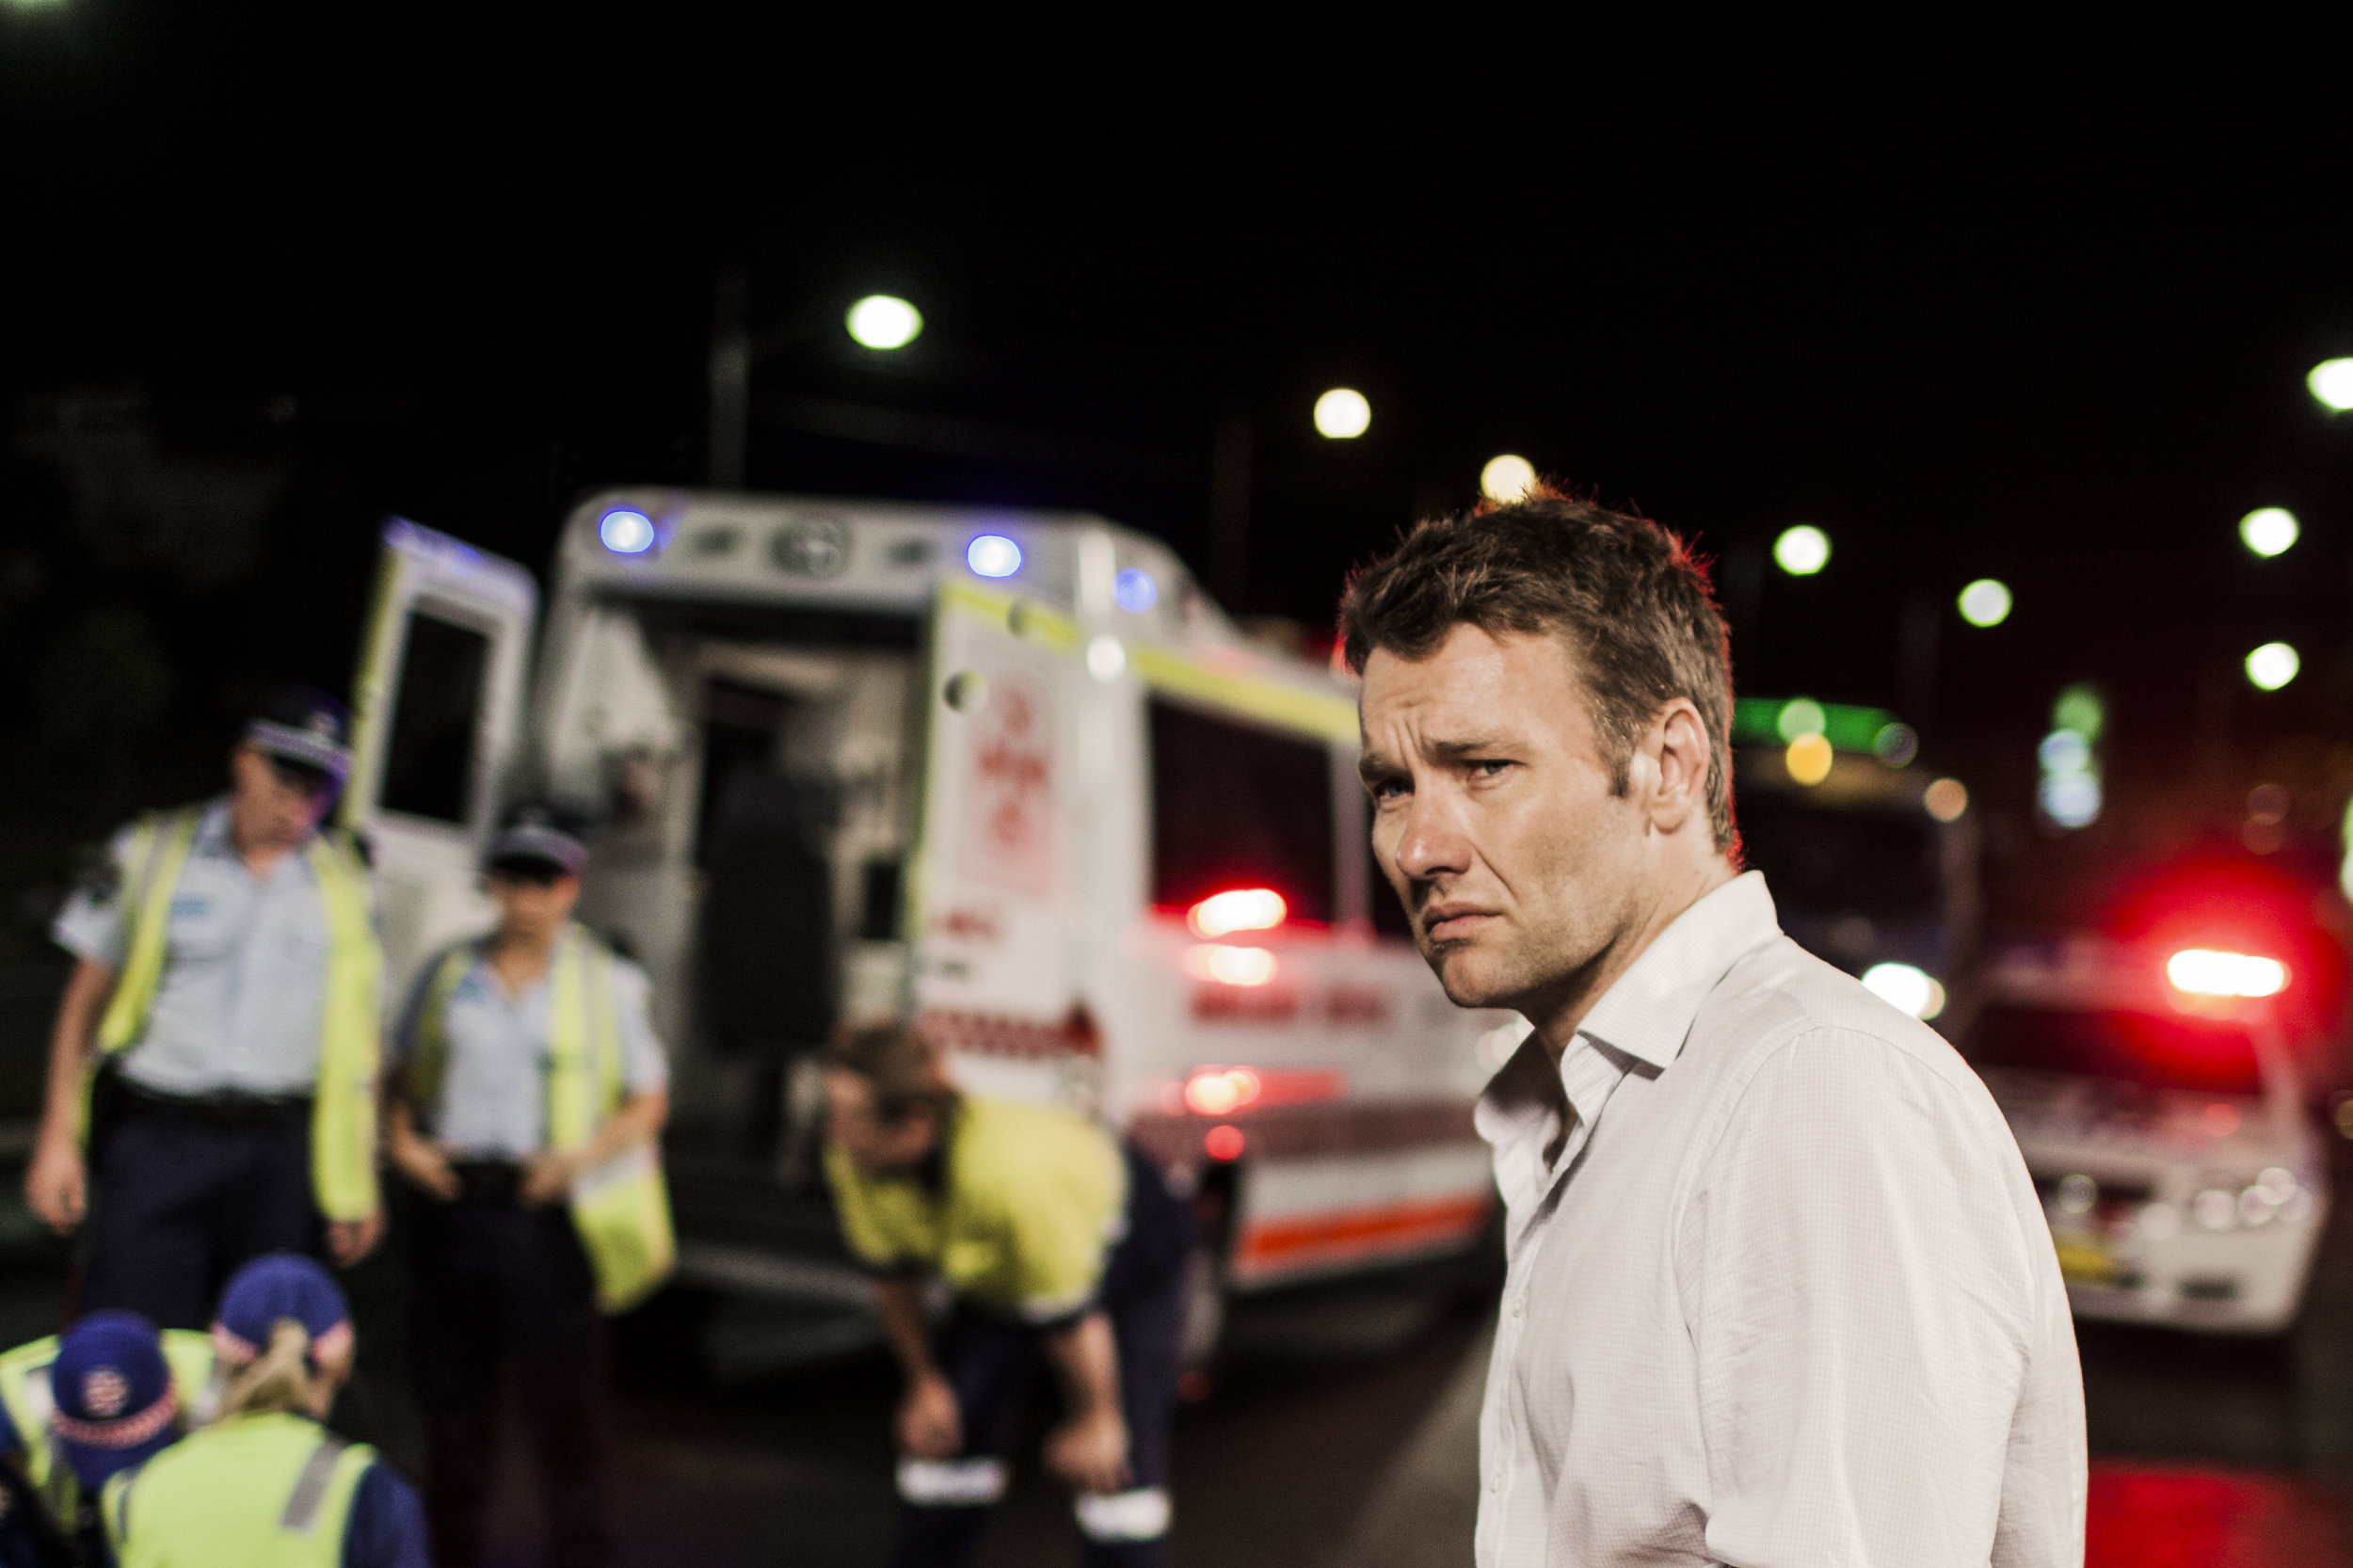 Felony_MR-817-Edit - Malcom Toohey (Joel Edgerton).jpg